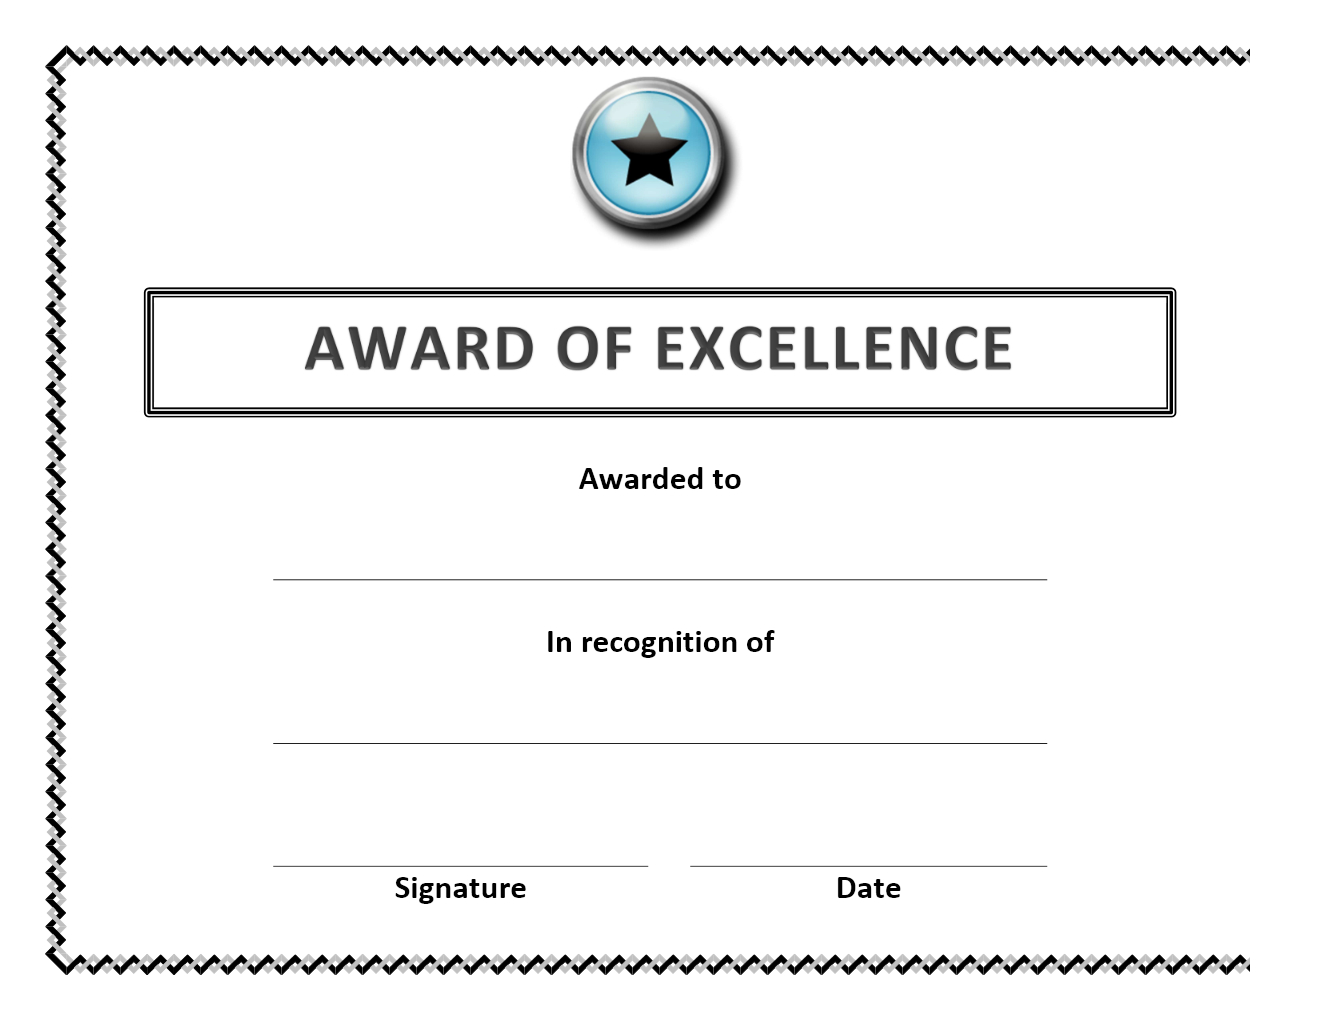 Award Of Excellence Certificate Within Award Of Excellence Certificate Template